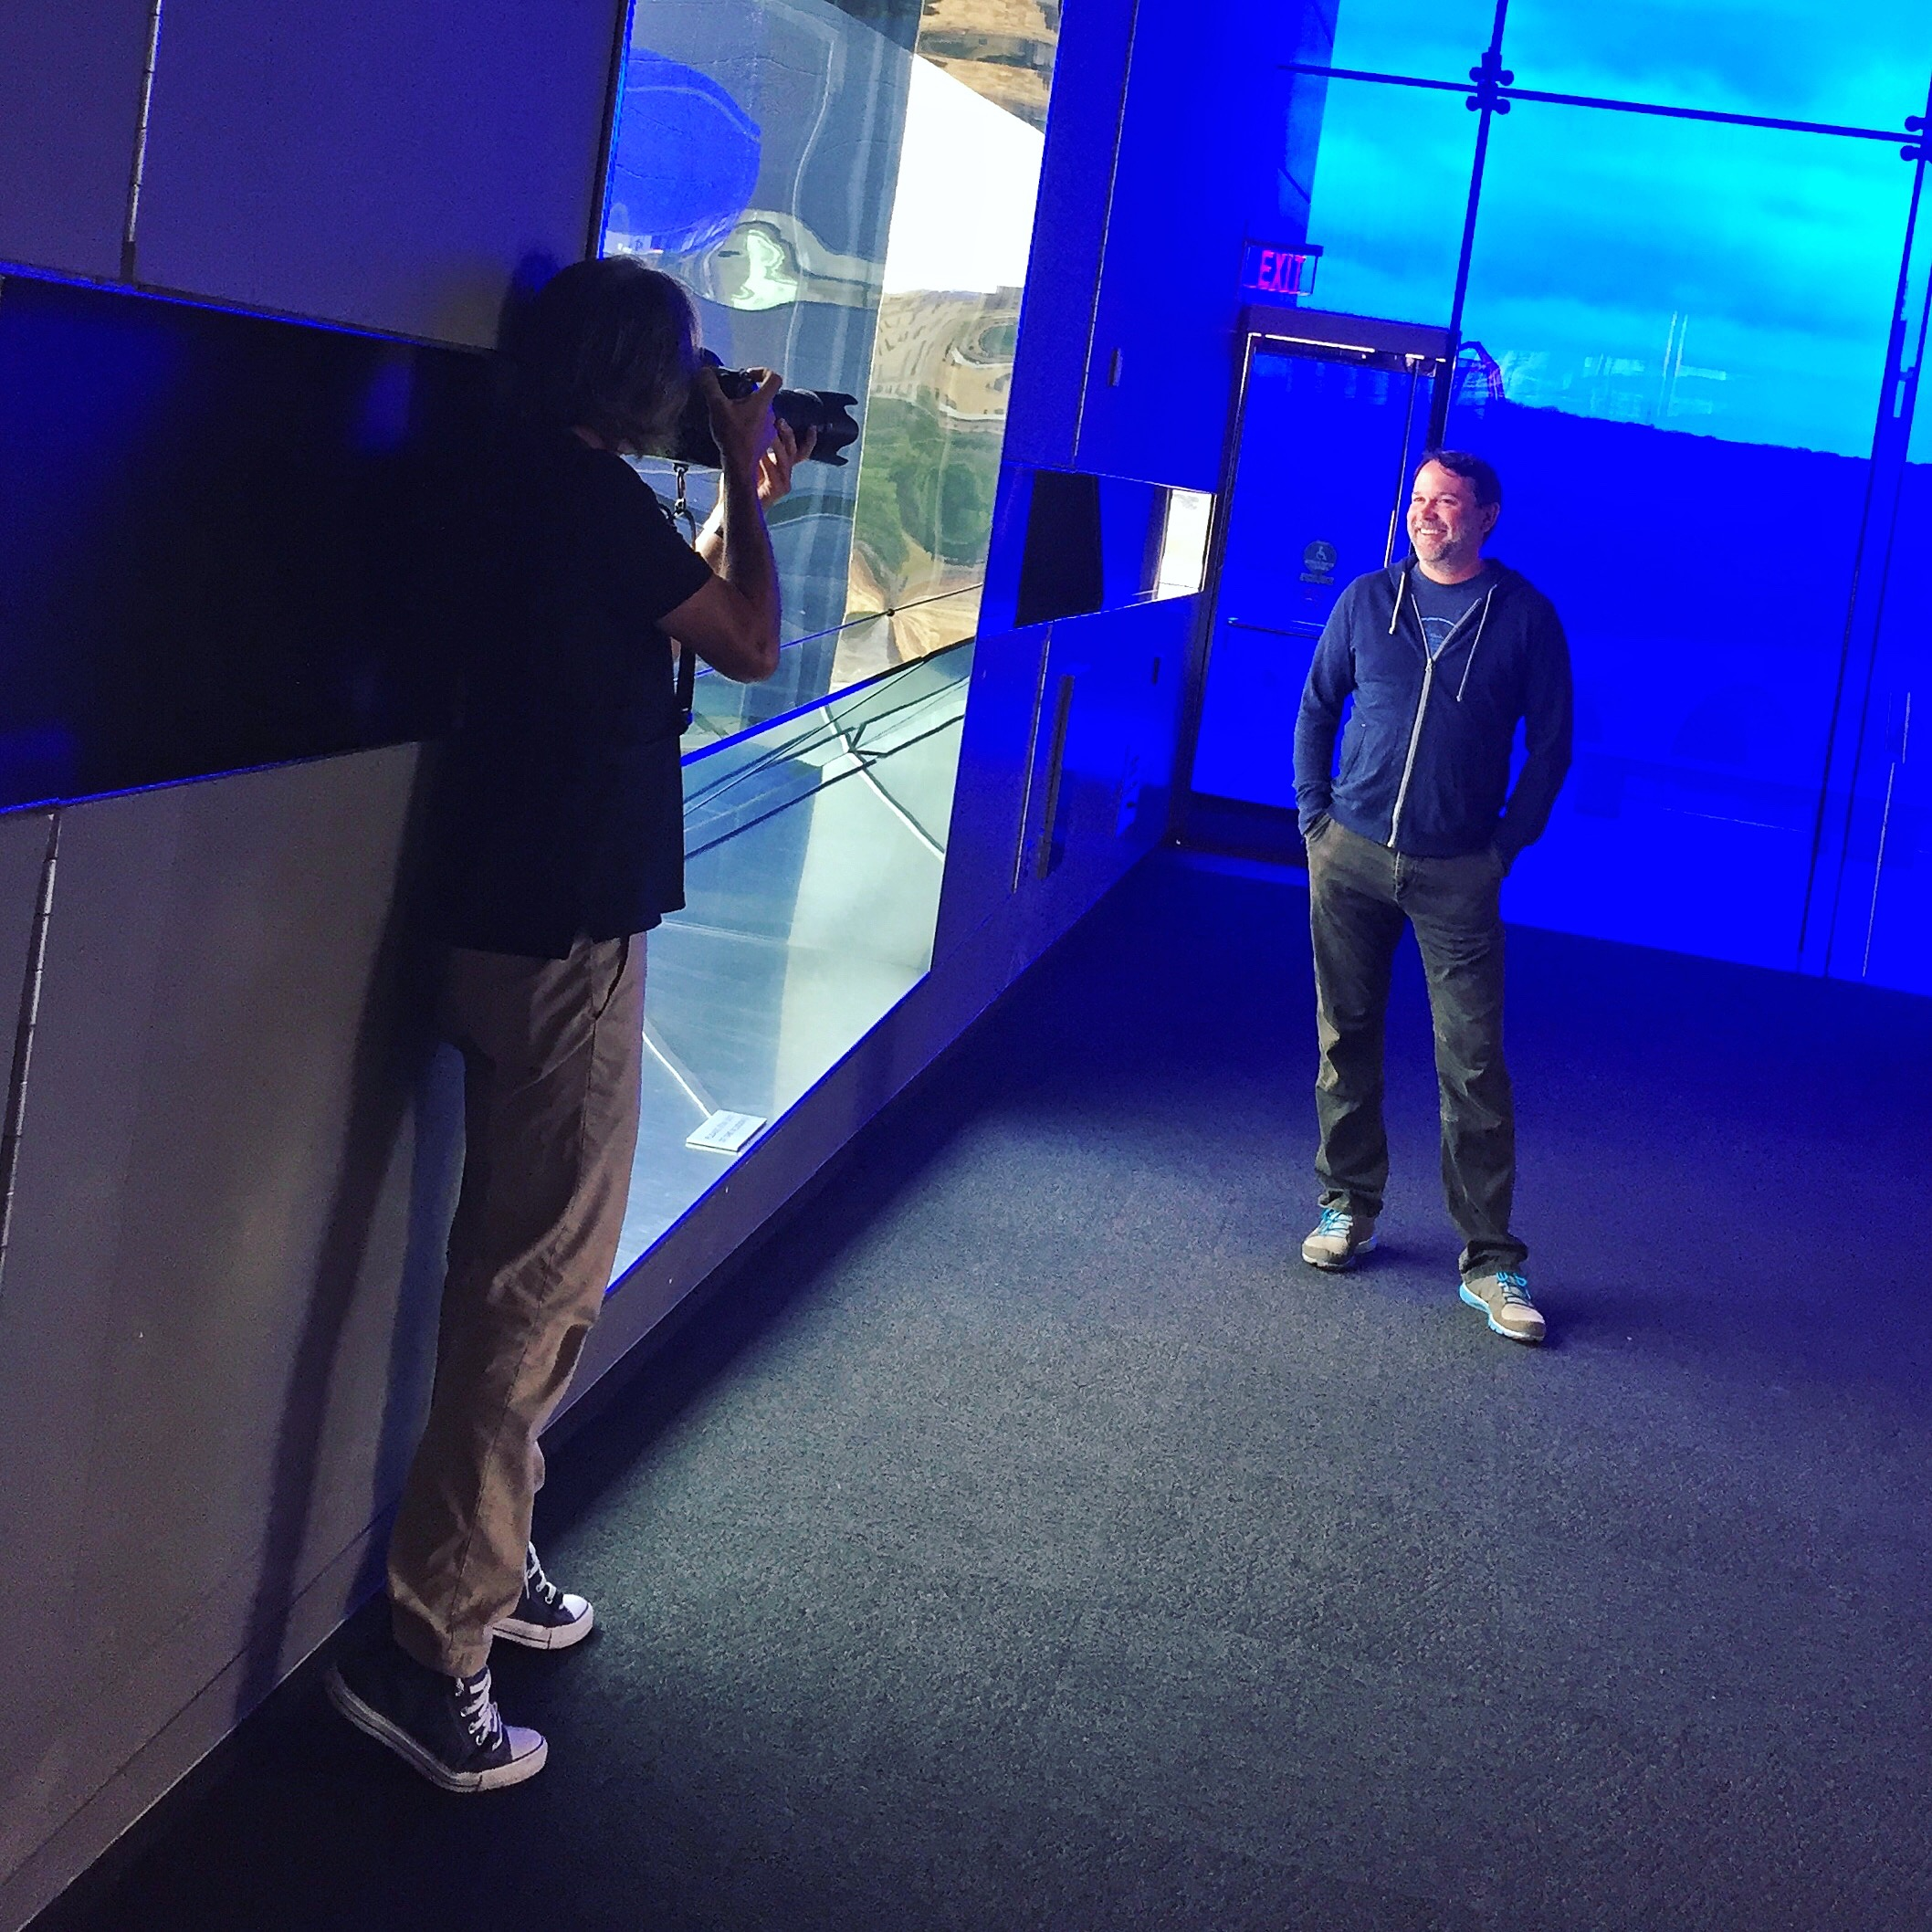 Scott photographing us at the Guthrie Theatre in Minneapolis, 2018.